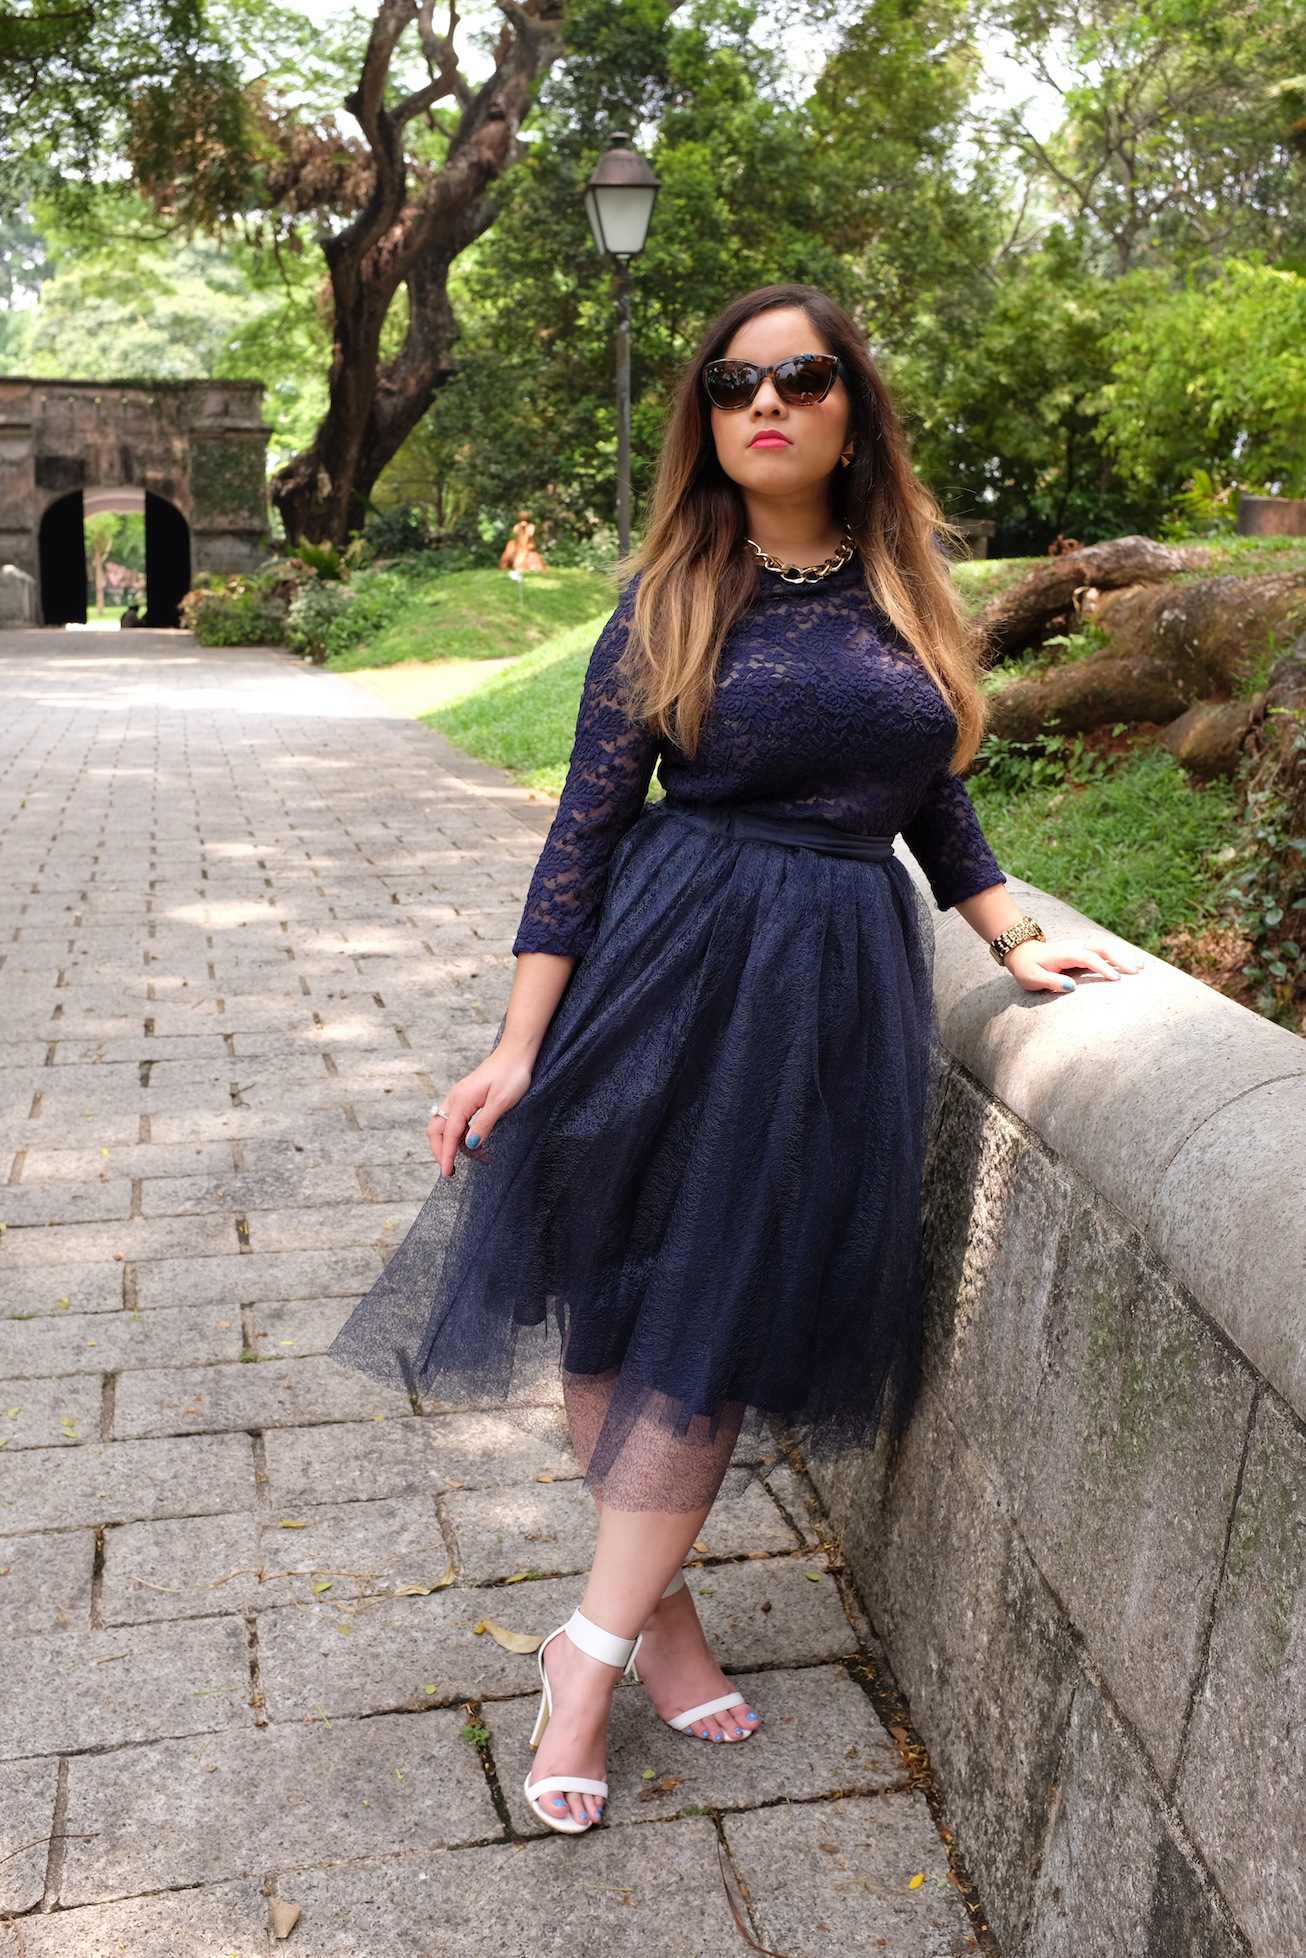 nezuki, lace, navy blue, navy, tulle skirt, tulle, lace top, lace skirt, heels, stilettos, high heels, sunglasses, prada, miu miu, chain, gold, bling, jewelry, jewellery, makeup, natural, elegant, japan, singapore, travel, fort canning, location, shoot, photo shoot, photography, fashion, fashion photography, style, outfit shot, outfit, blogger, Australia, Australian blogger, perth, natural, gardens, landscape photography, Fuji x100s, Fuji, street style, glam, get the look, blogger look, on trend, inspiration, dream, inspo